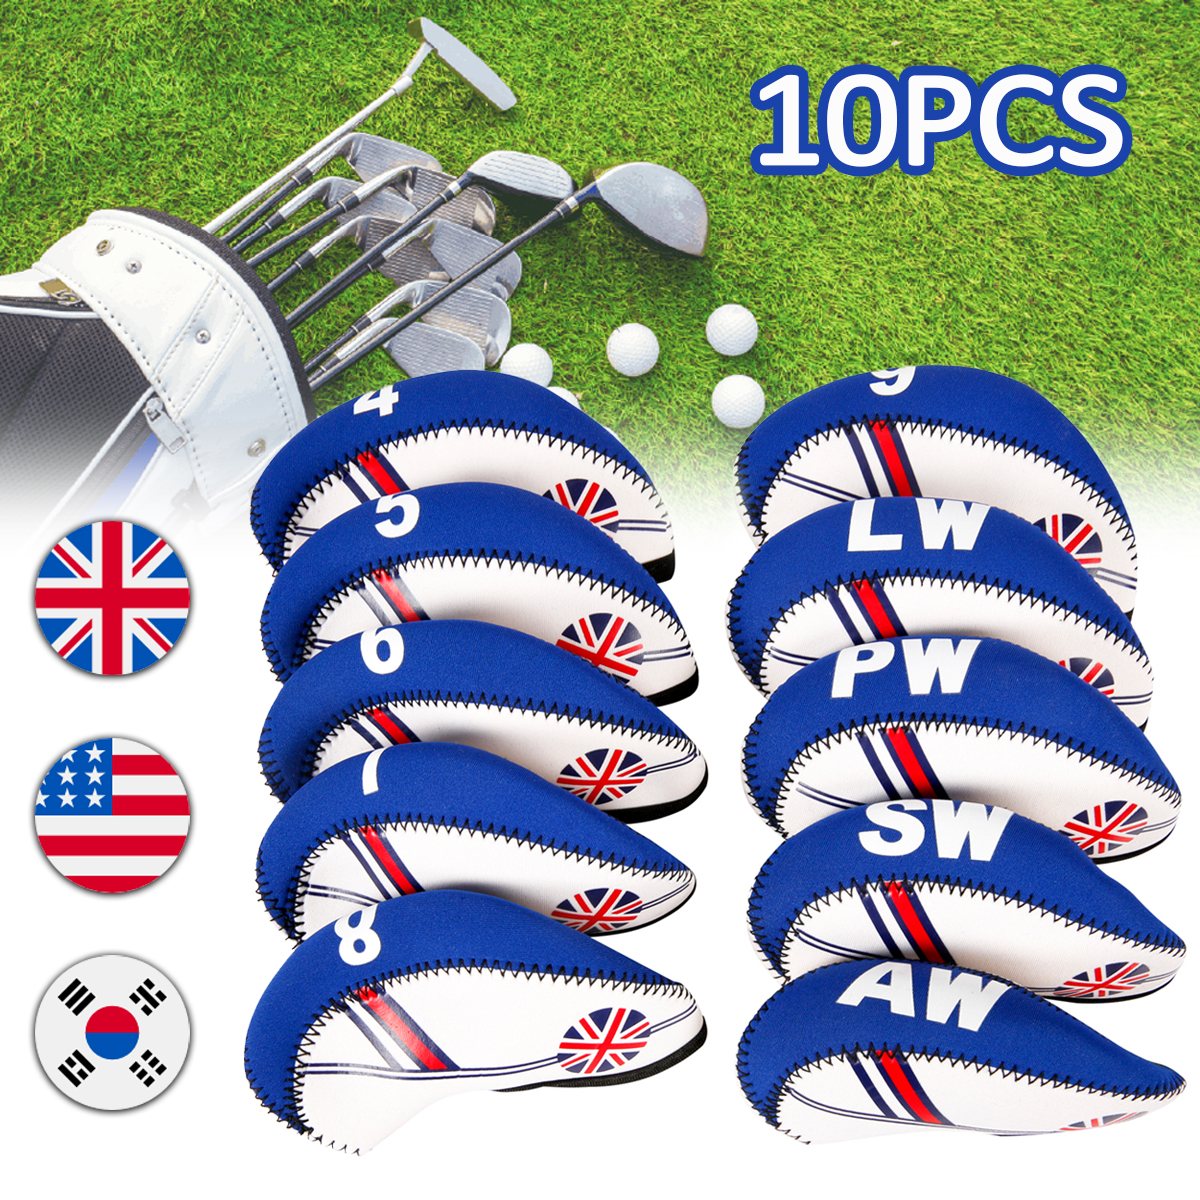 10Pcs/set Golf Club Iron Head Cover Neoprene National Flag Headc